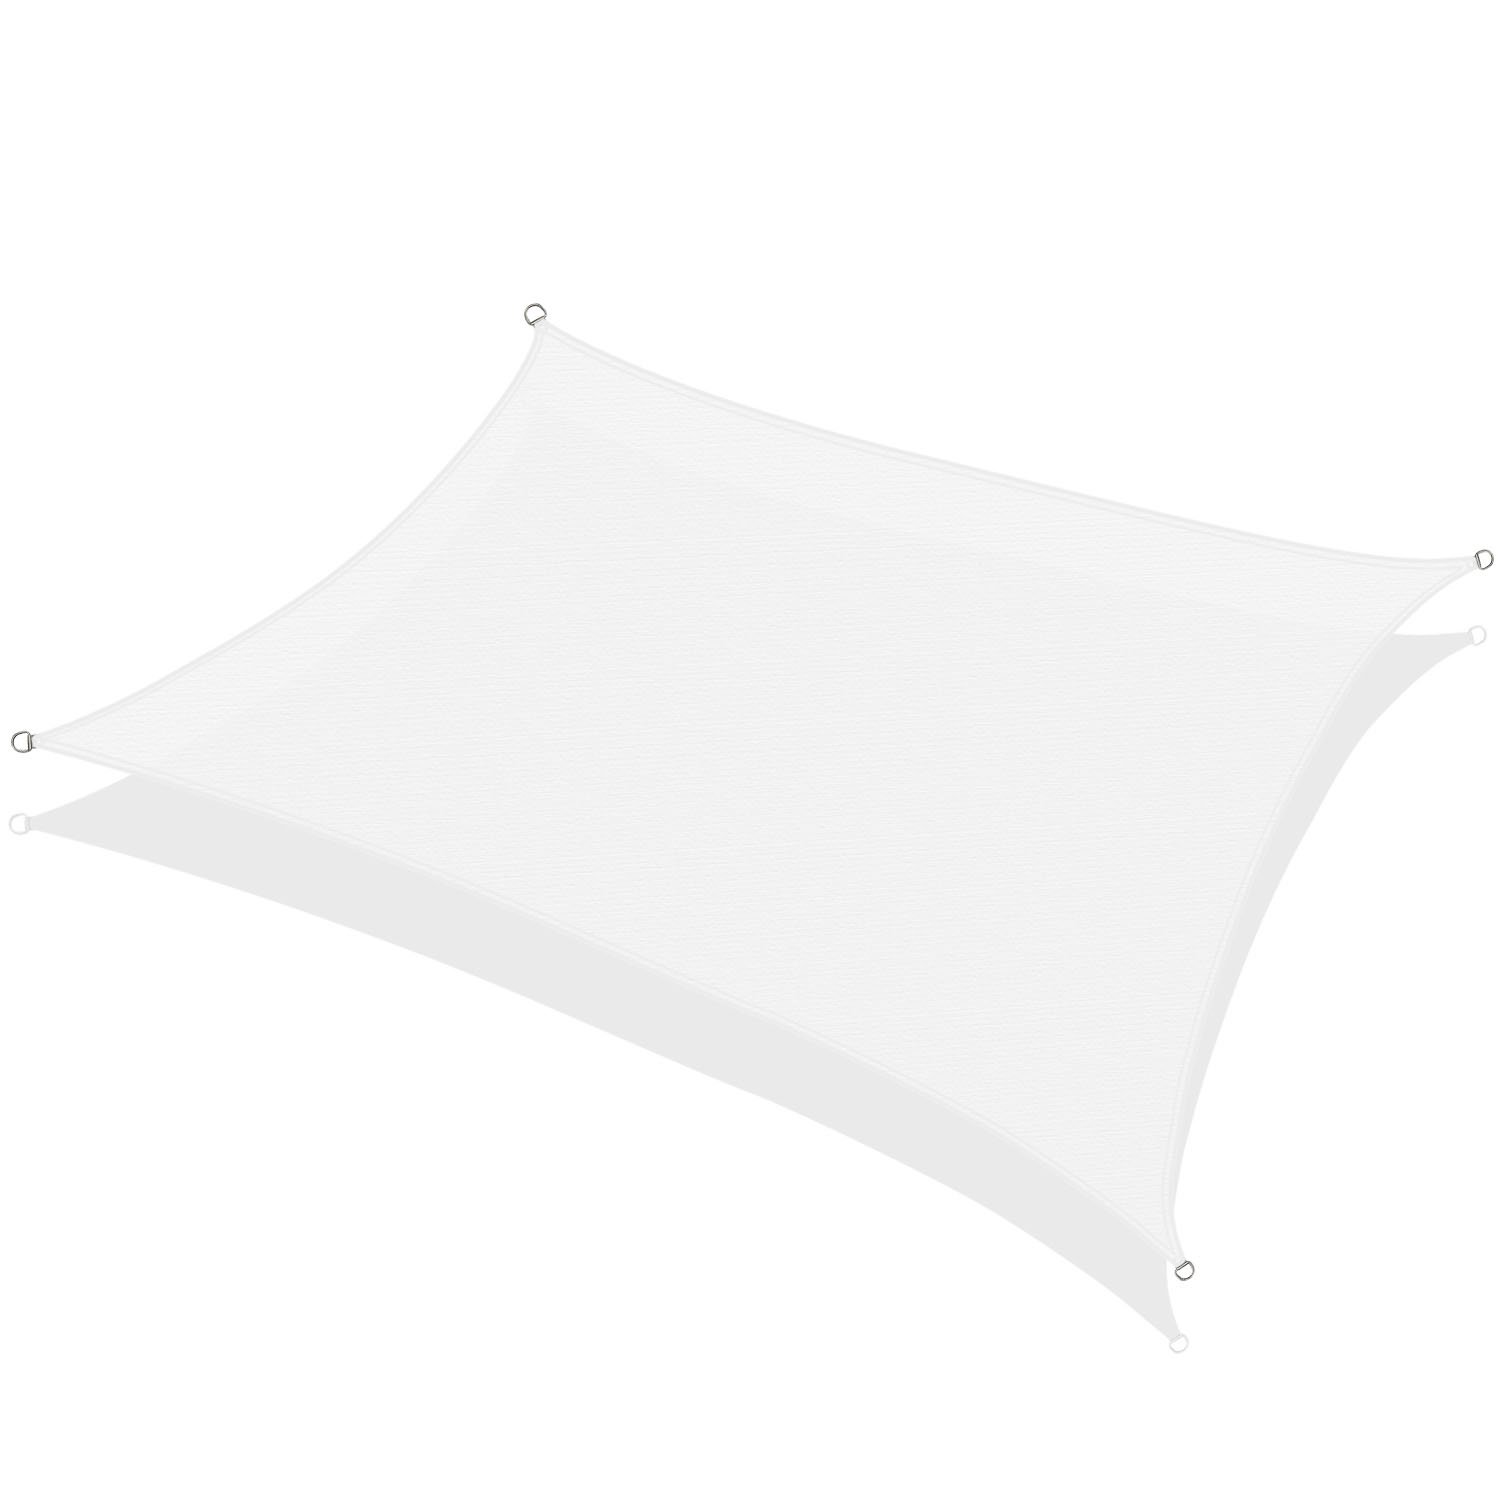 KHOMO GEAR Rectangular Sun Shade Sail 12 x 16 Ft UV Block Fabric – White